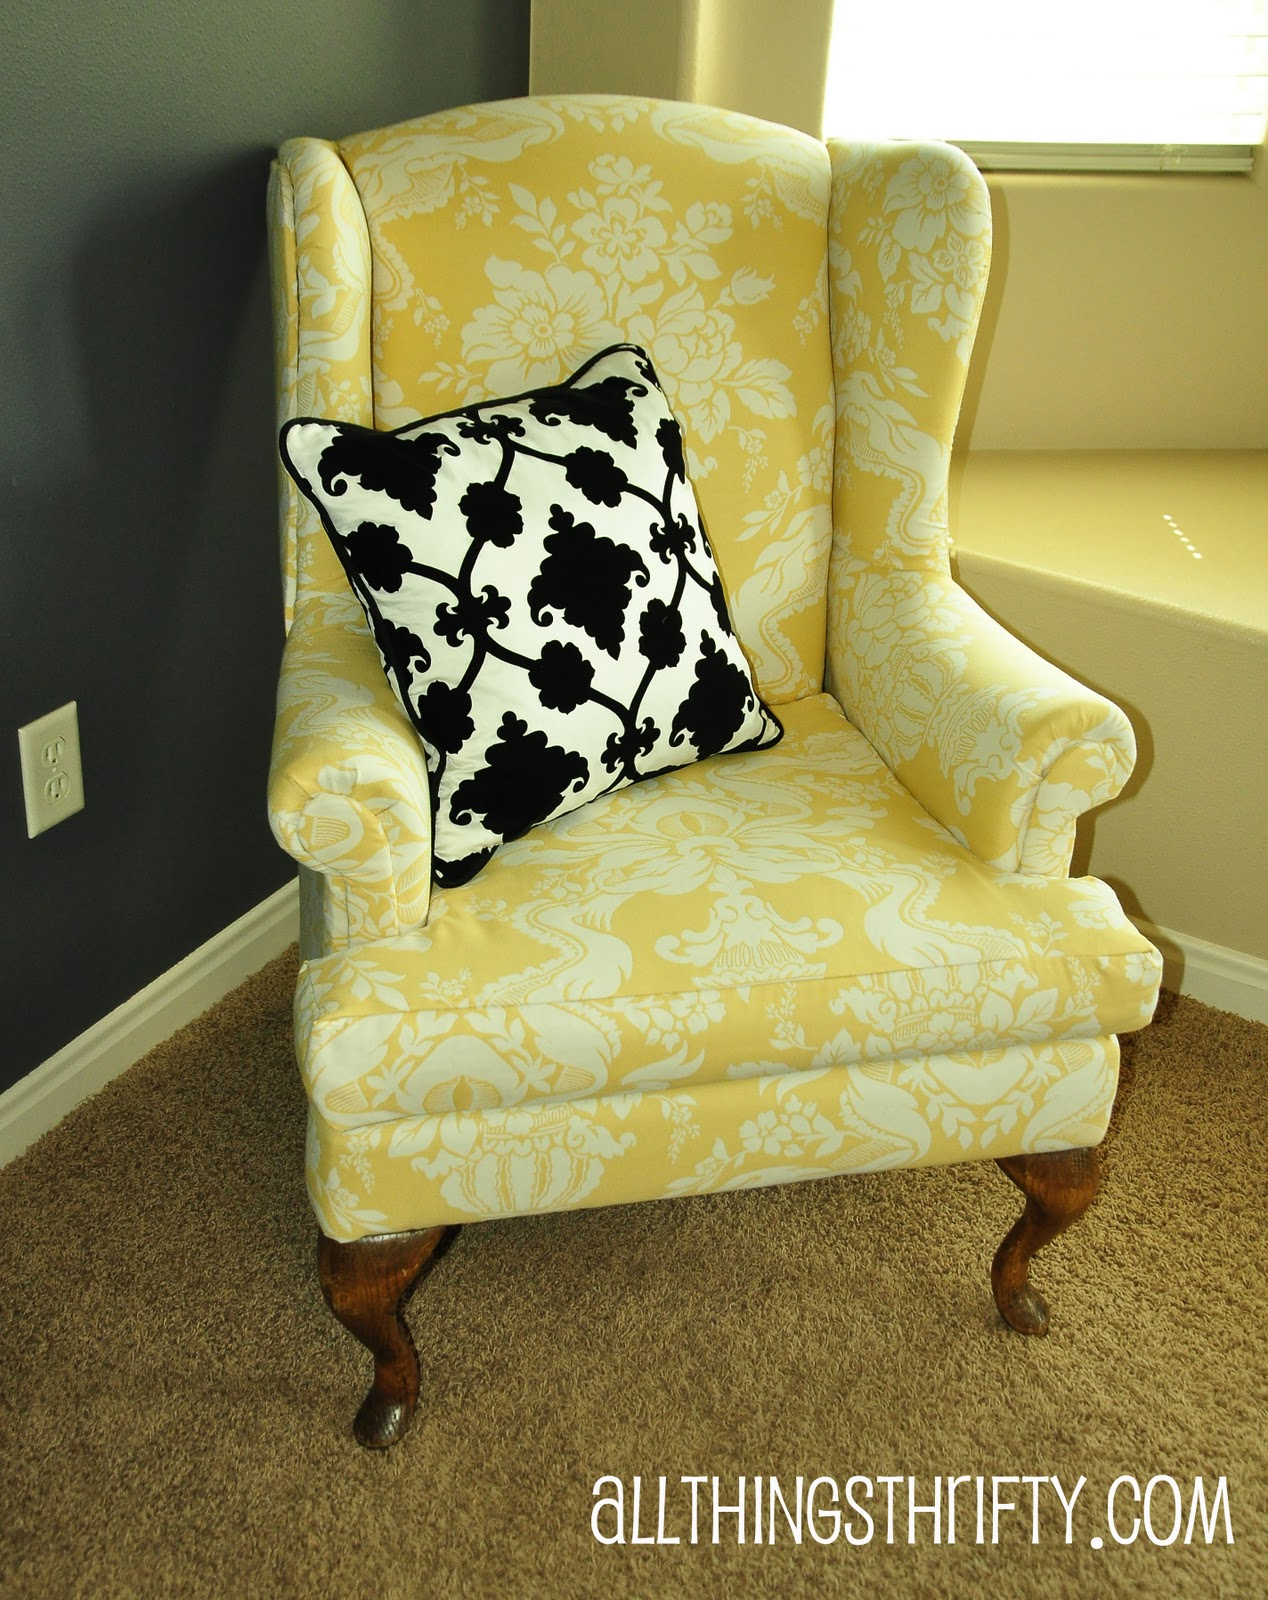 & Upholstering a Wing Back Chair Upholstery Tips | All Things Thrifty islam-shia.org